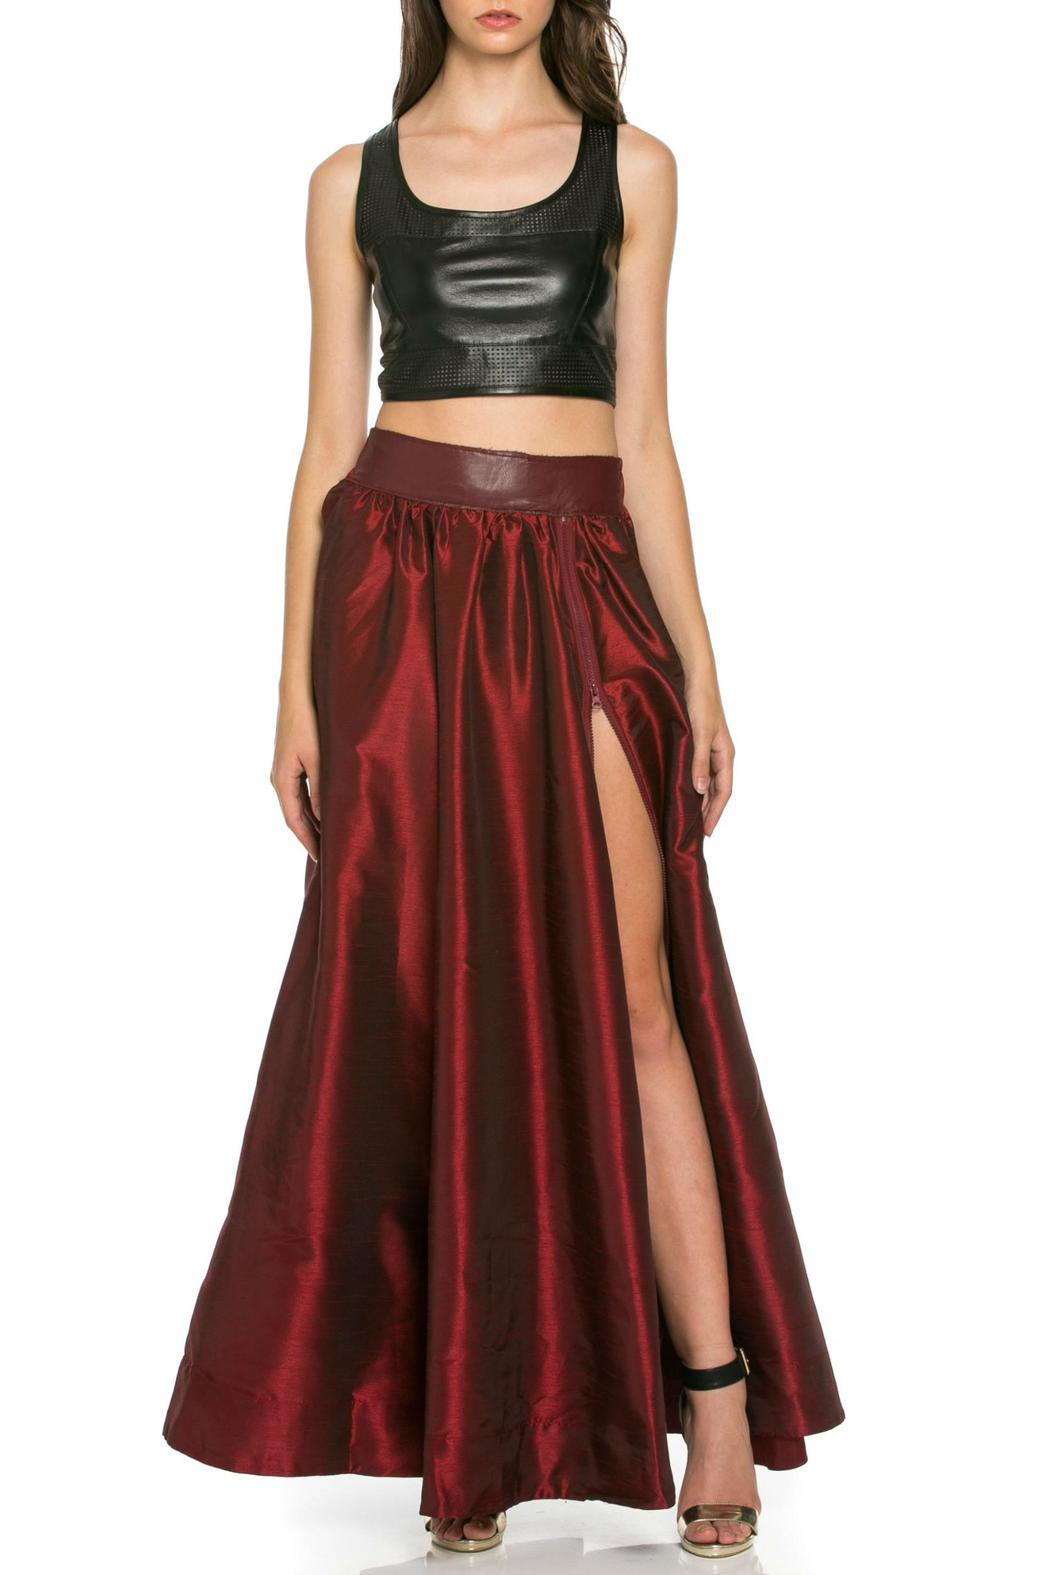 MHGS Wine Holiday Maxi - Front Cropped Image